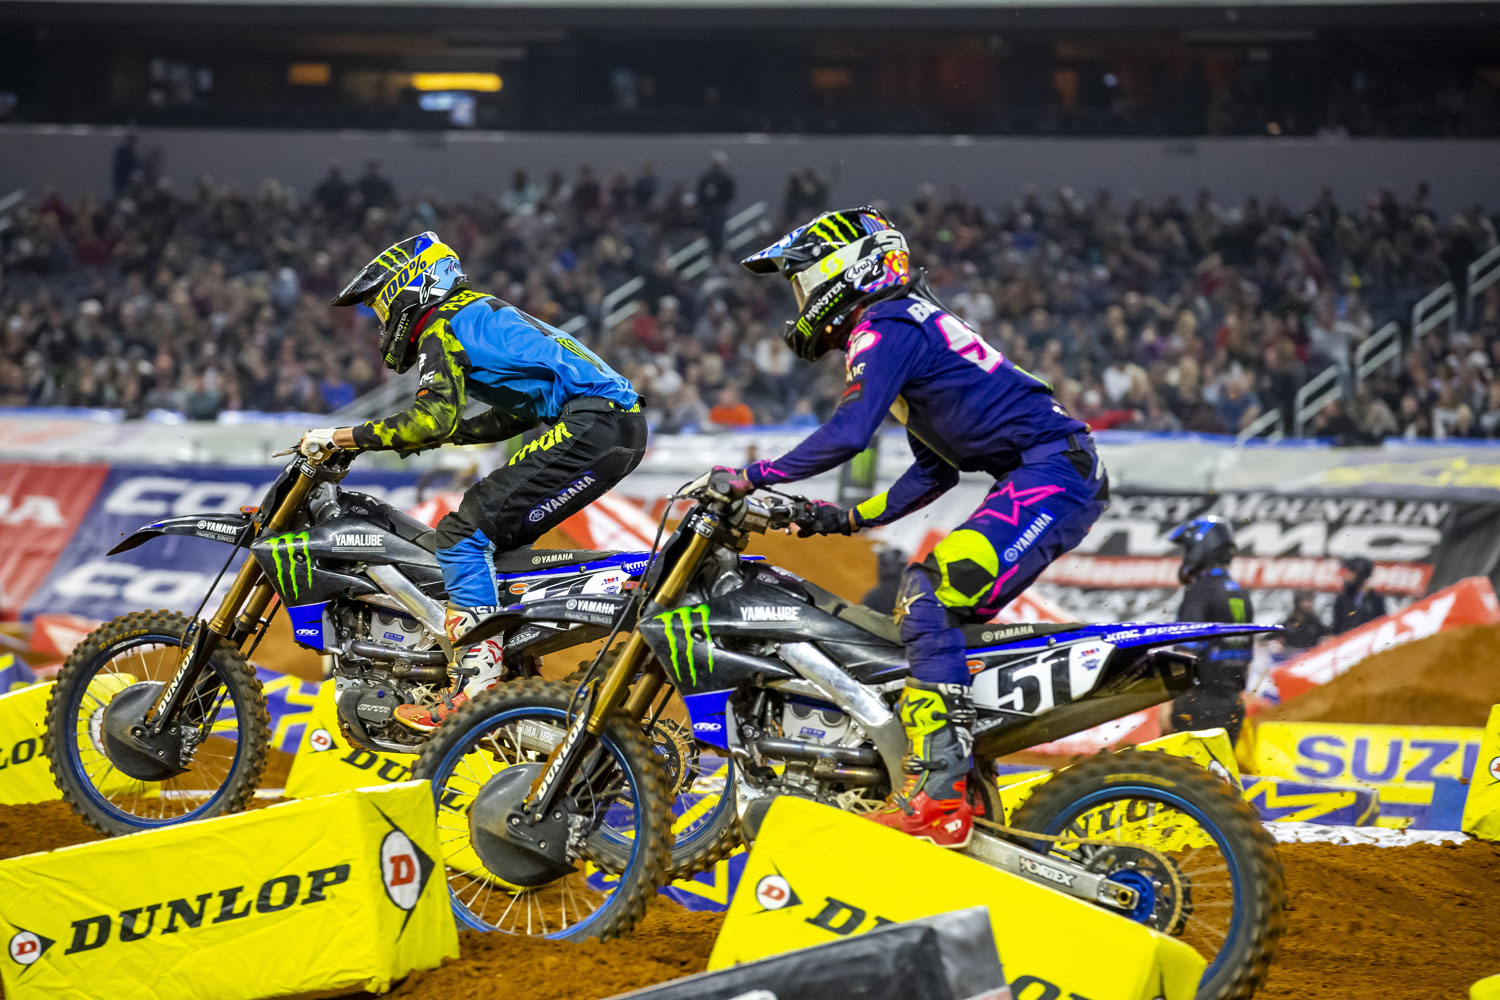 PLESSINGER_2019_ARLINGTON_SX_OCTOPI__GM_4237.jpg